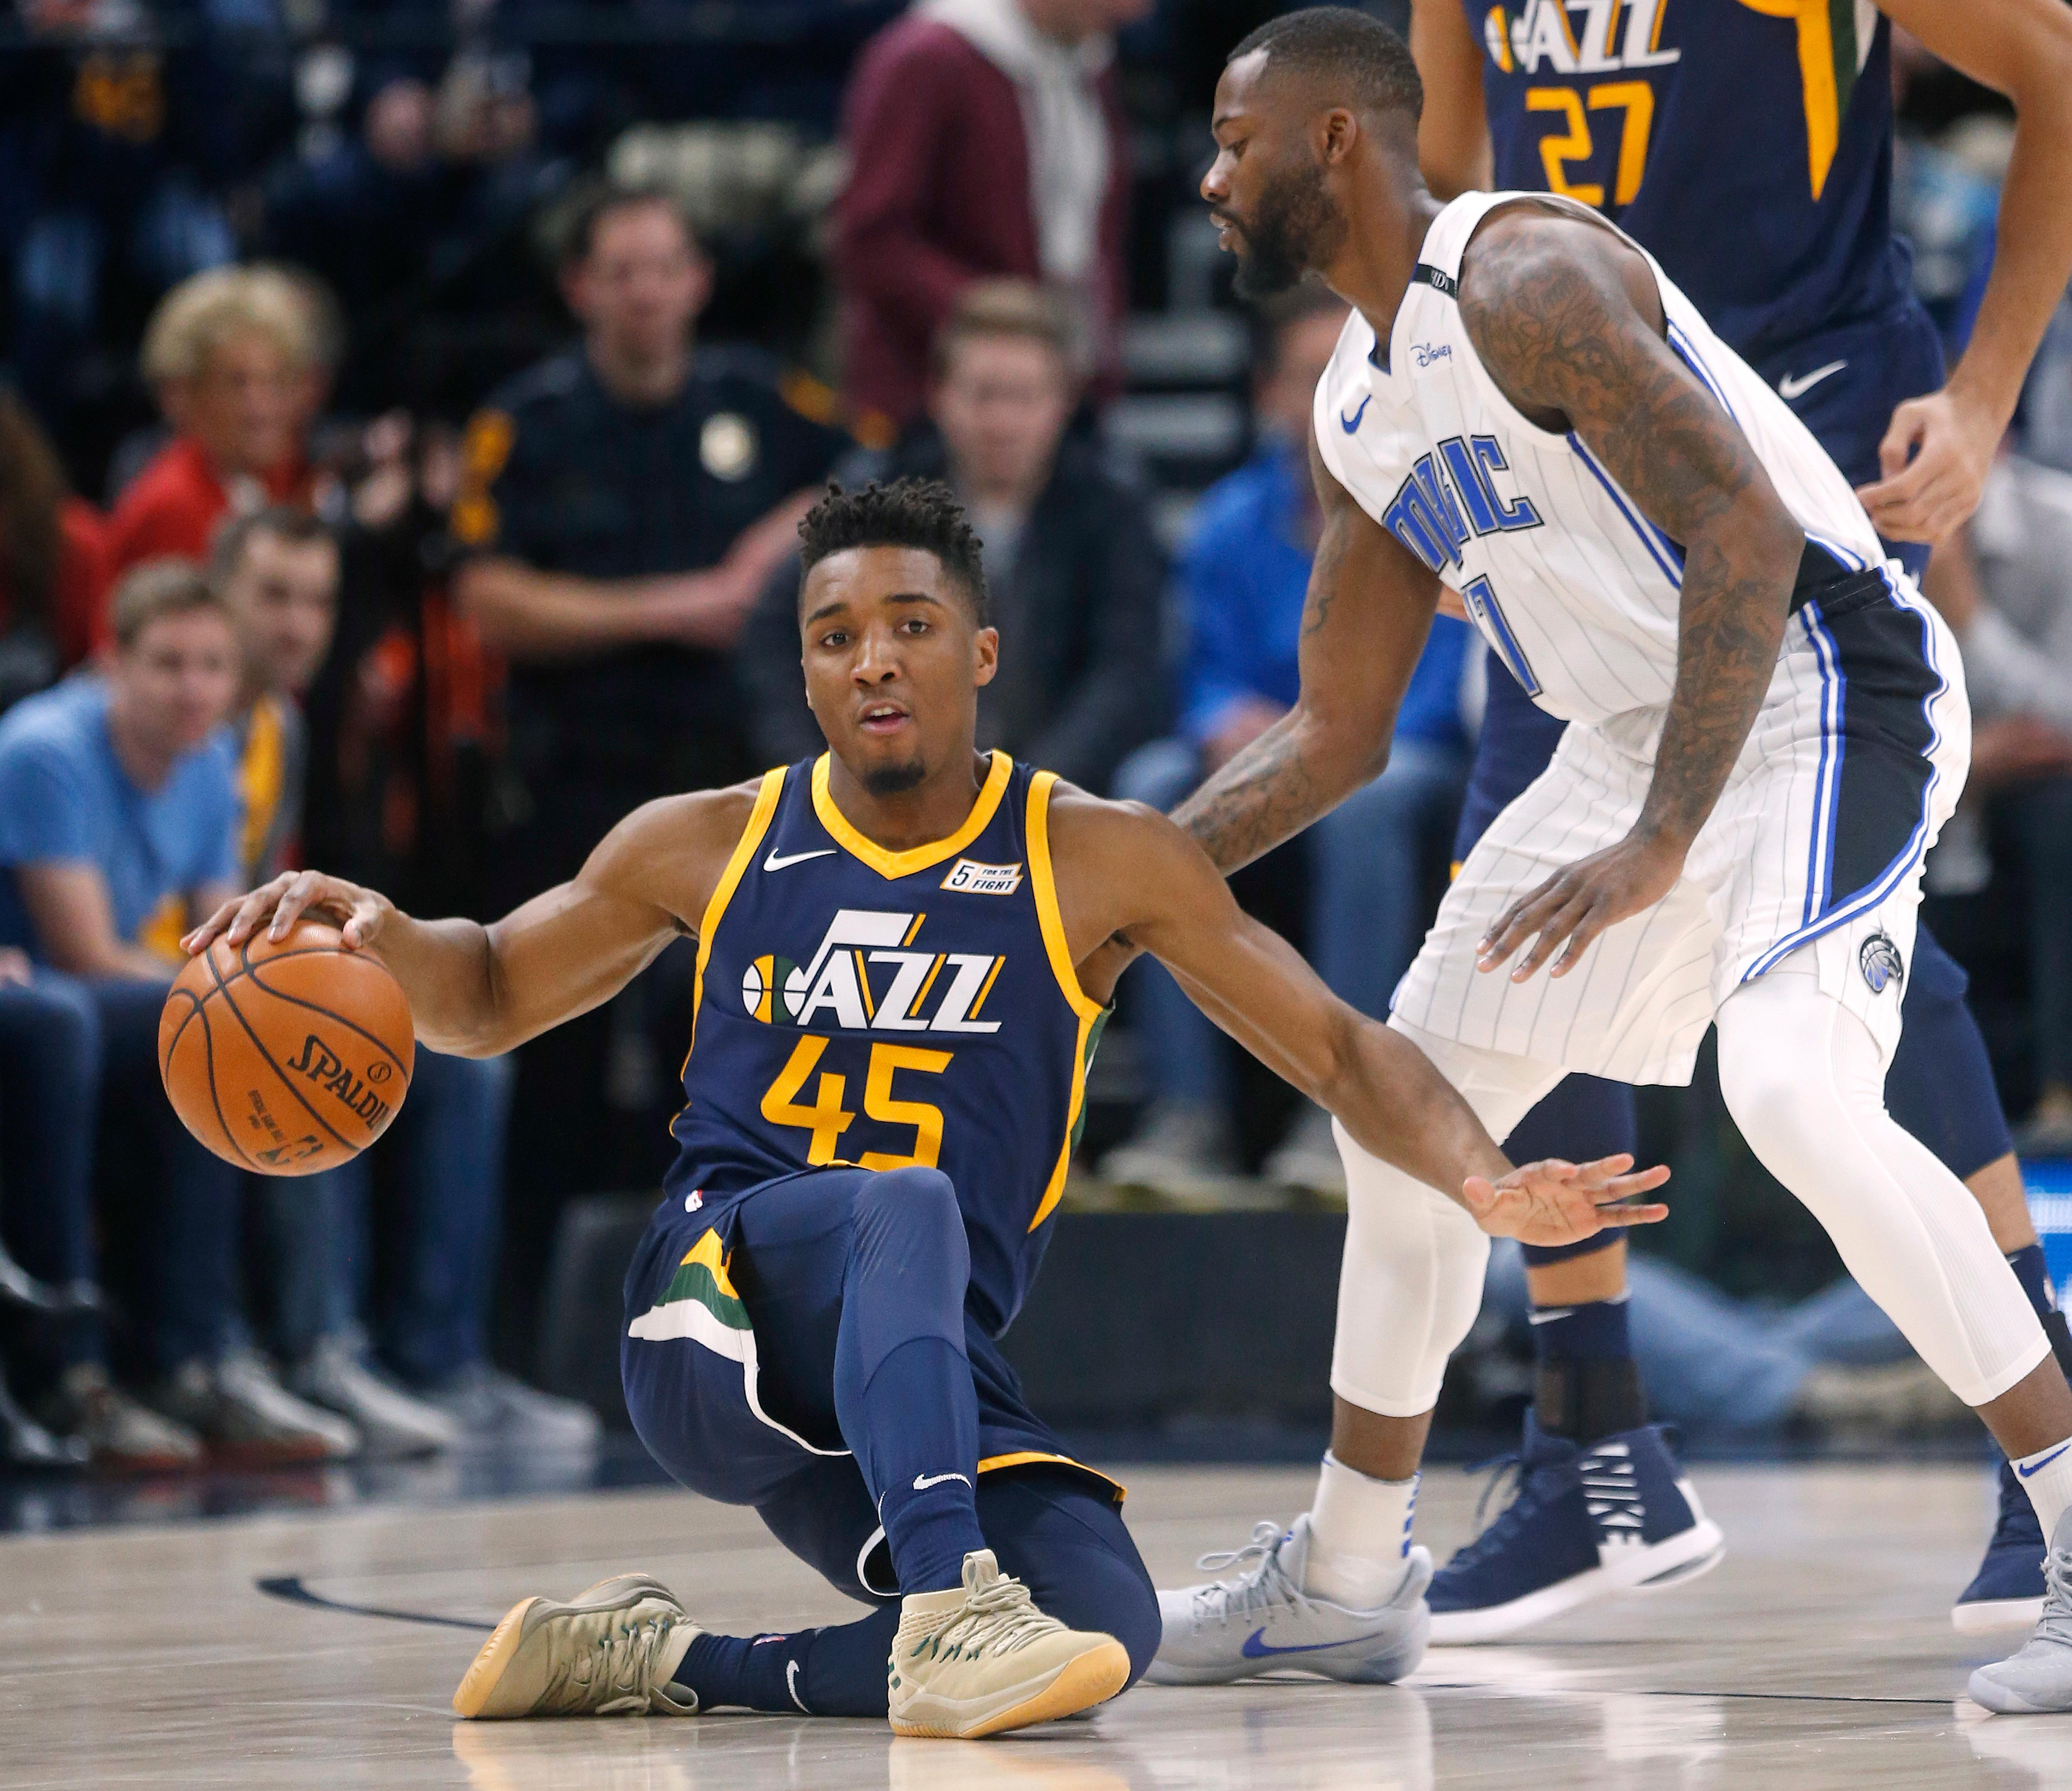 Orlando Magic forward Jonathon Simmons, right, guards against Utah Jazz guard Donovan Mitchell (45) in the first half during an NBA basketball game Monday, March 5, 2018, in Salt Lake City. (AP Photo/Rick Bowmer)